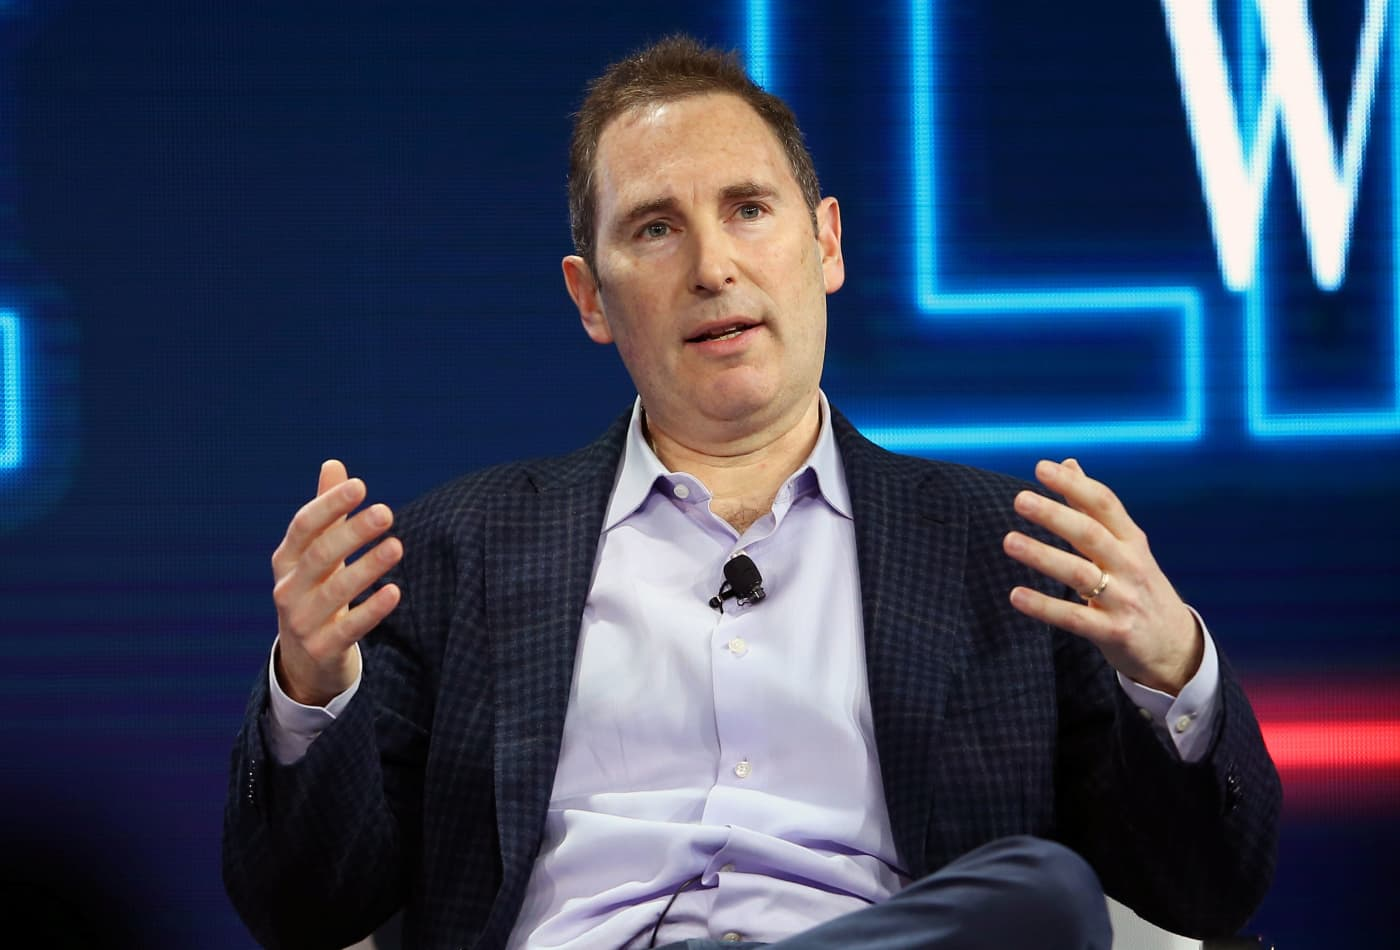 Amazon's next CEO, Andy Jassy, transformed e-commerce company into a cloud computing giant